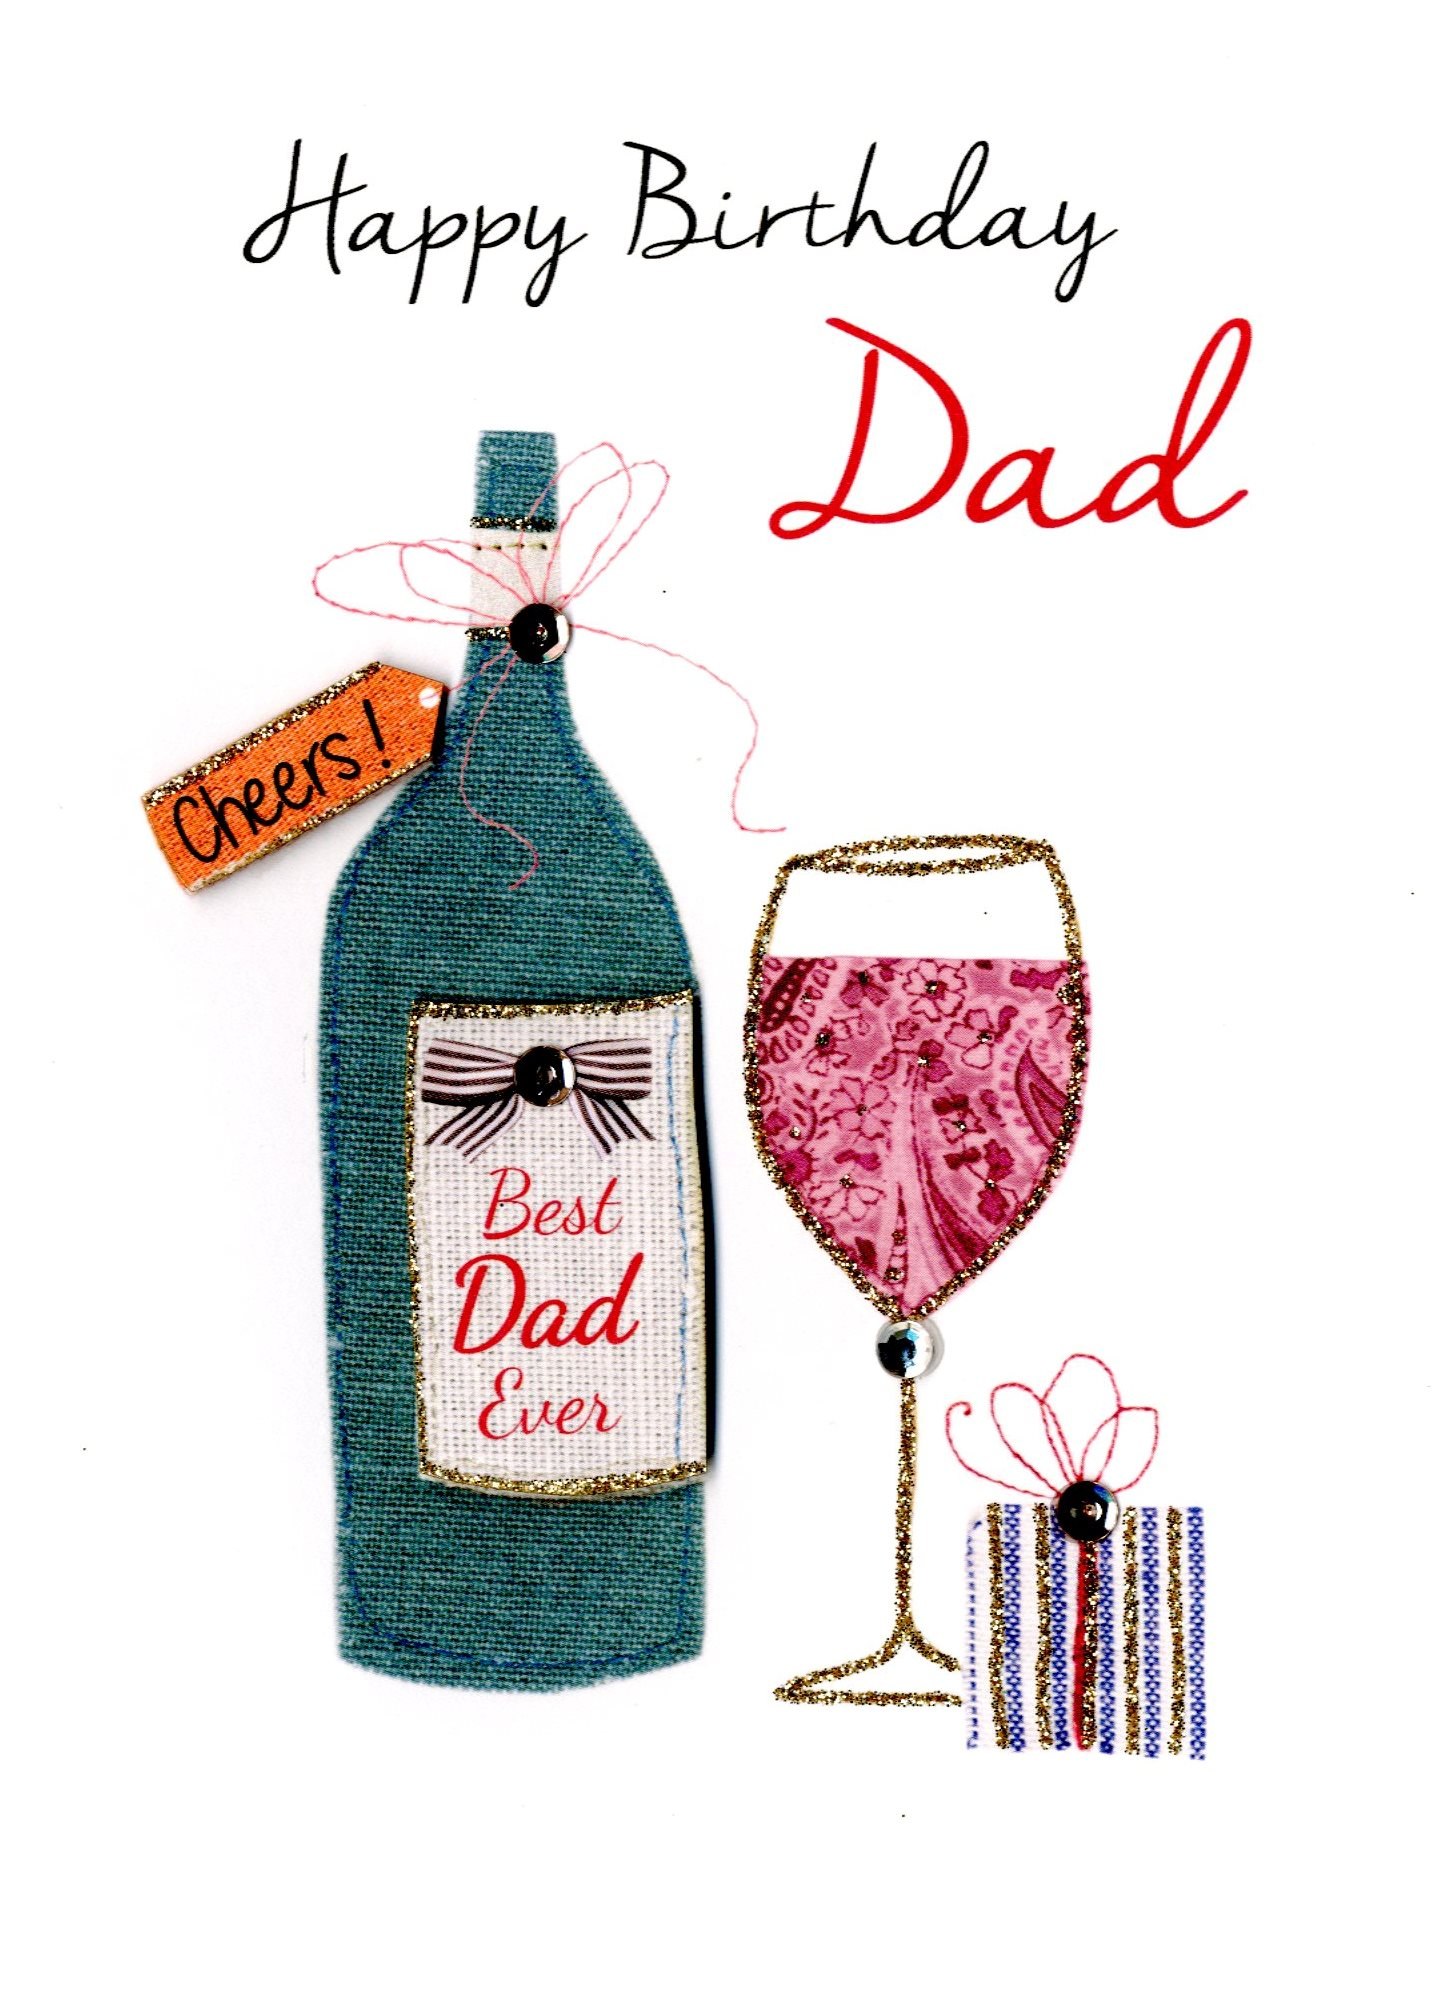 Best Dad Ever Happy Birthday Greeting Card Cards